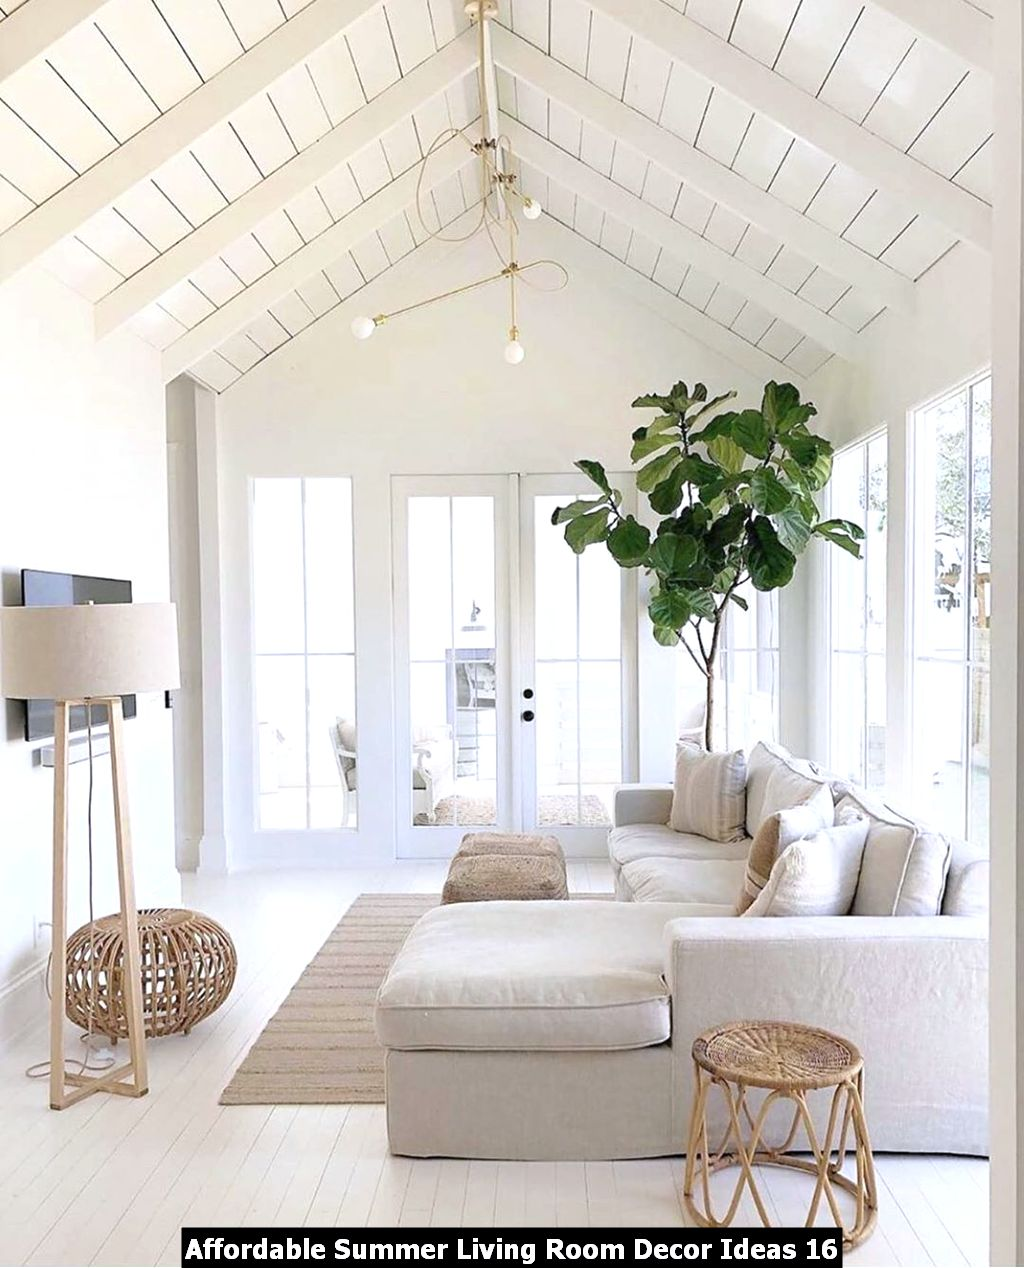 Affordable Summer Living Room Decor Ideas 16